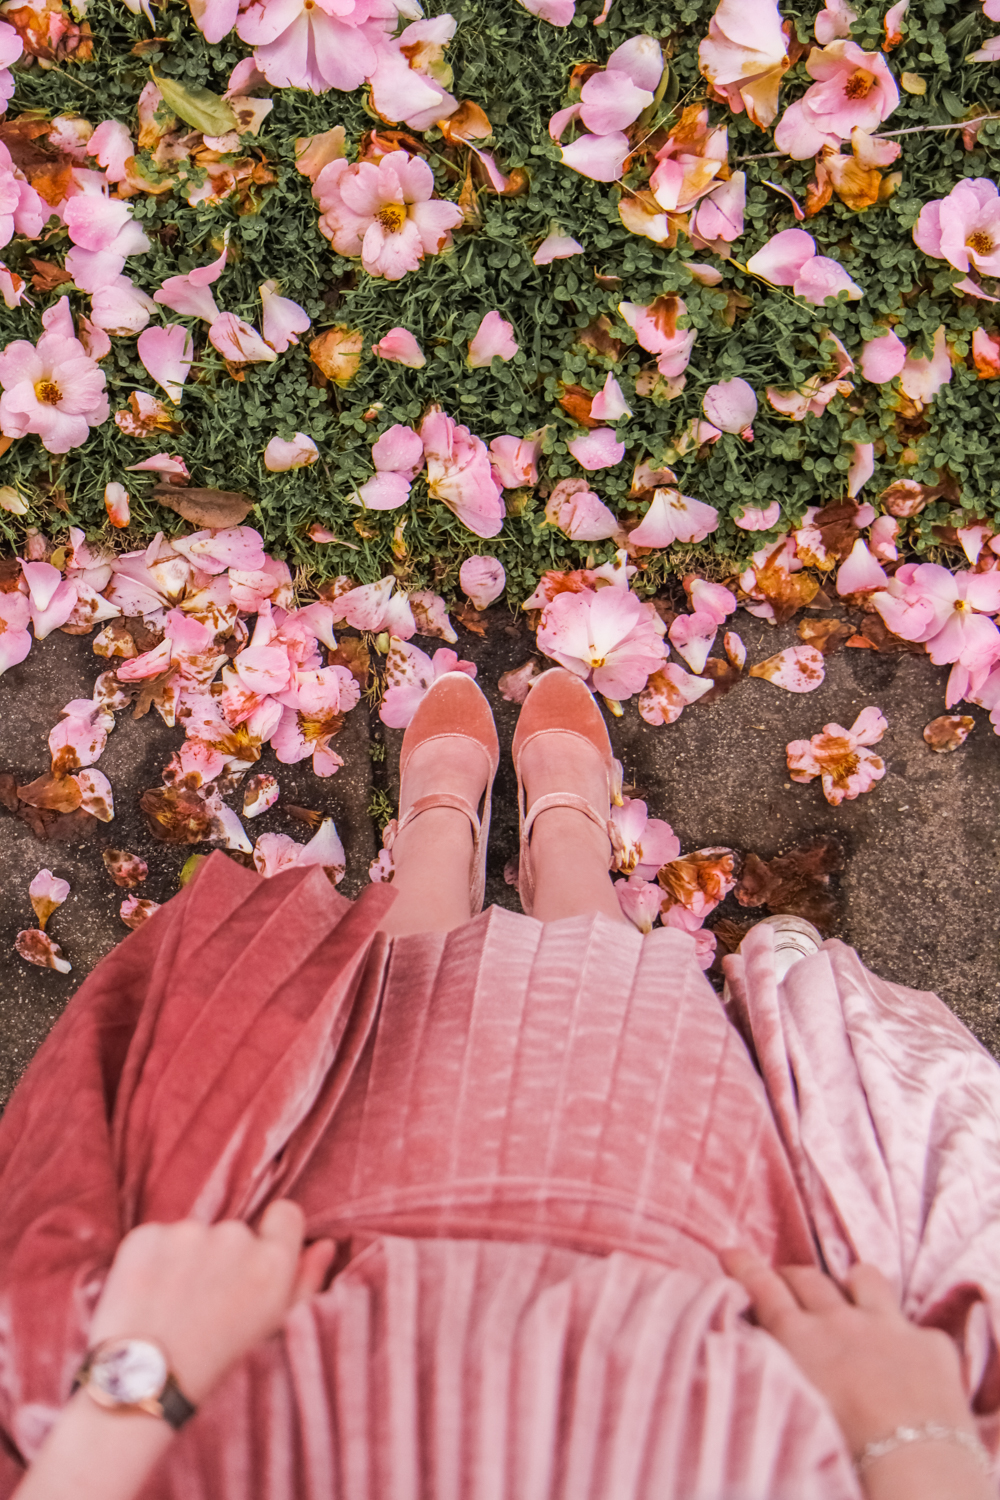 Liana looks down at her feet to take a photo of her pink velvet shoes in the camera. You're looking through the lens with her. Sophie's hands are in shot holding up the endless folds of soft pink velvet so you can see the shoes. She has an Olivia Burton watch and silver bracelet